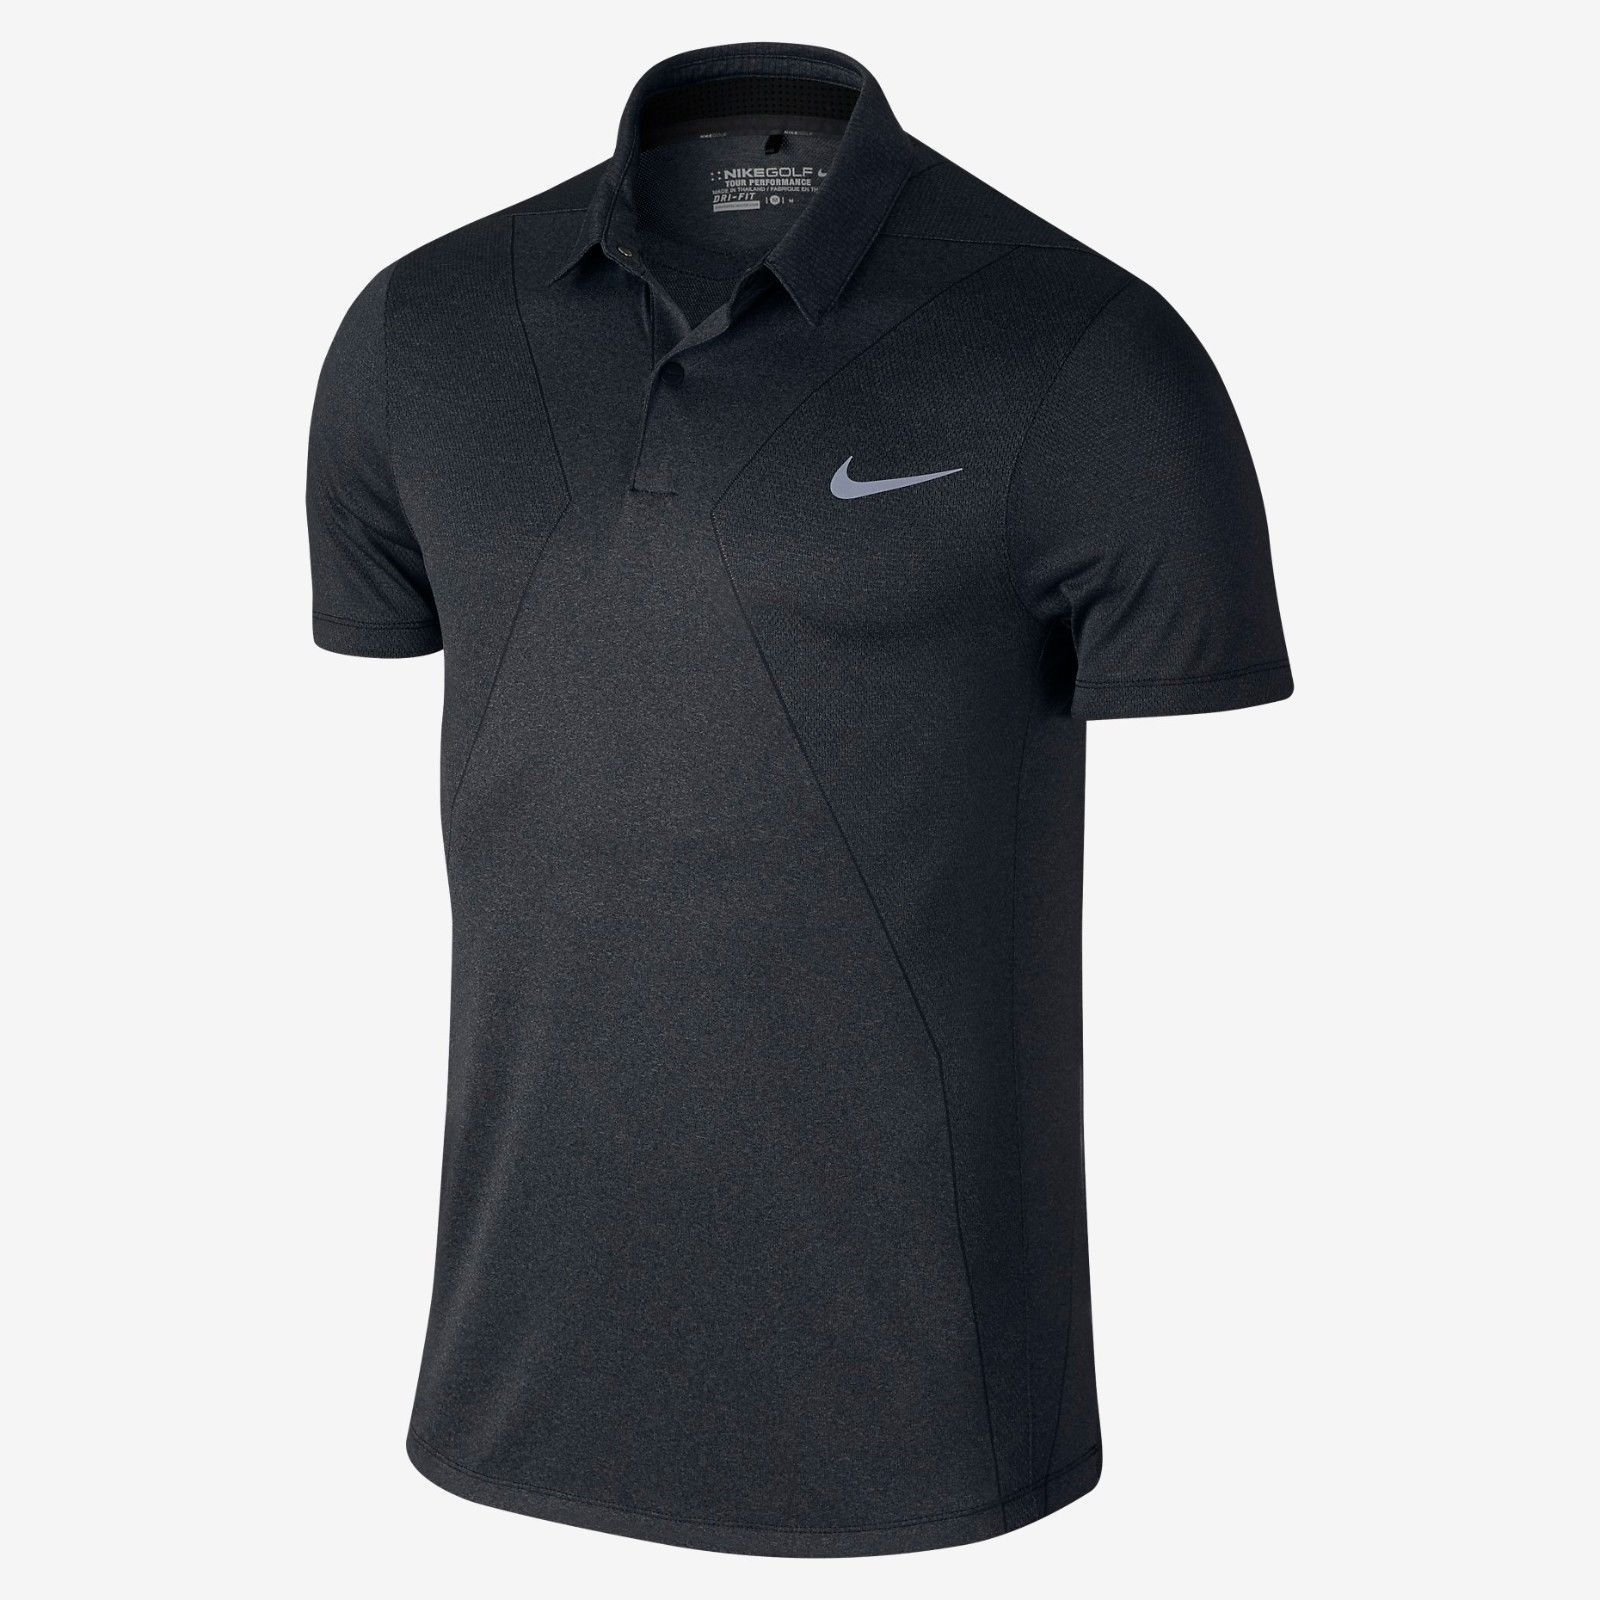 NIKE MM FLY SWING KNIT SLIM FIT GOLF POLO BLACK 725511-010 MENS SIZE LARGE